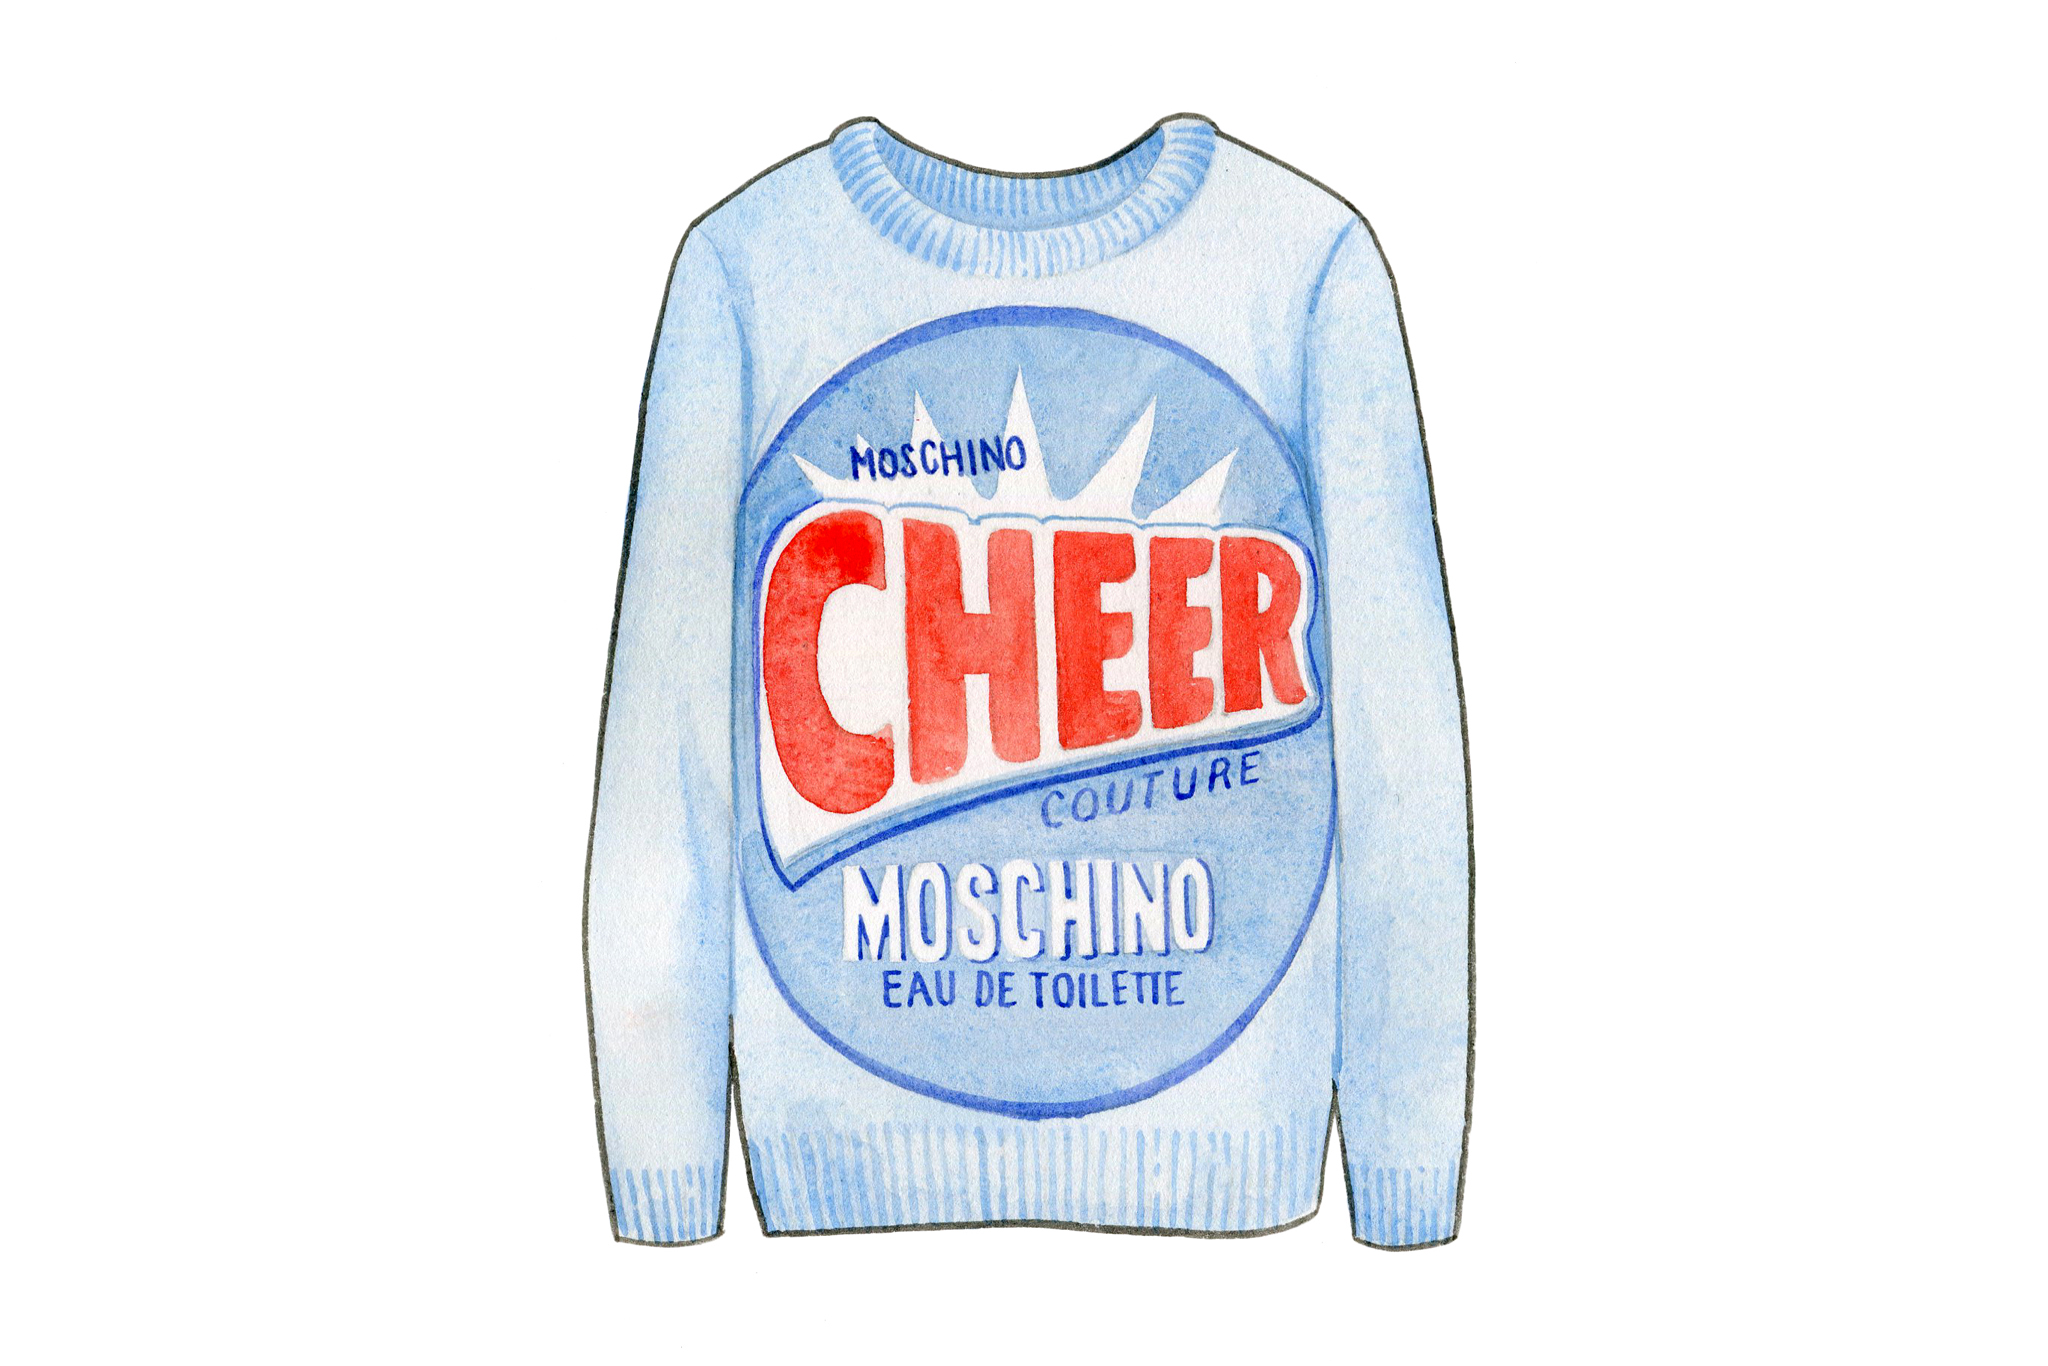 Moschino cleaned up for spring.